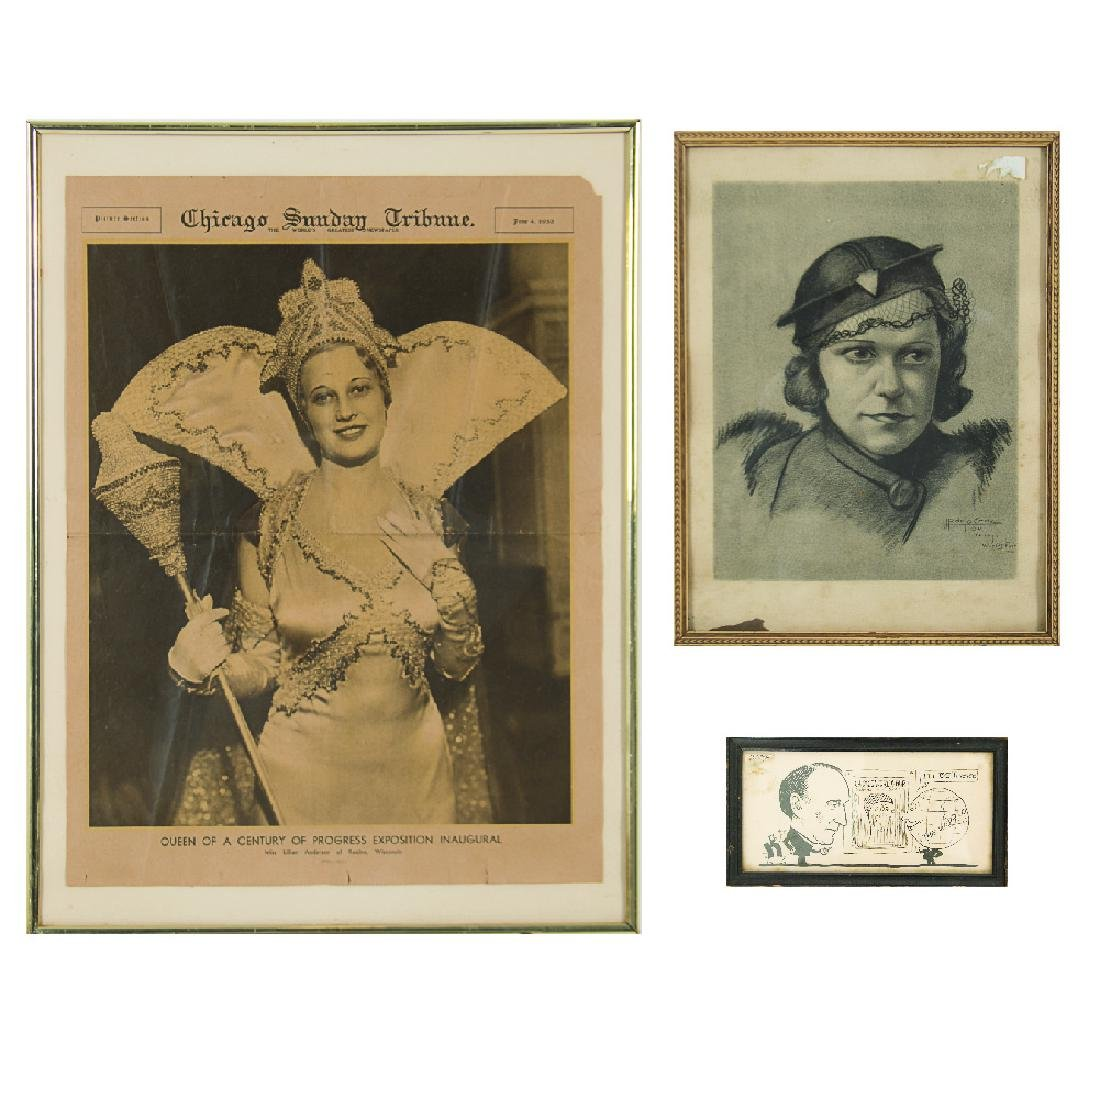 A Group of Three Framed Souvenirs from the Century of